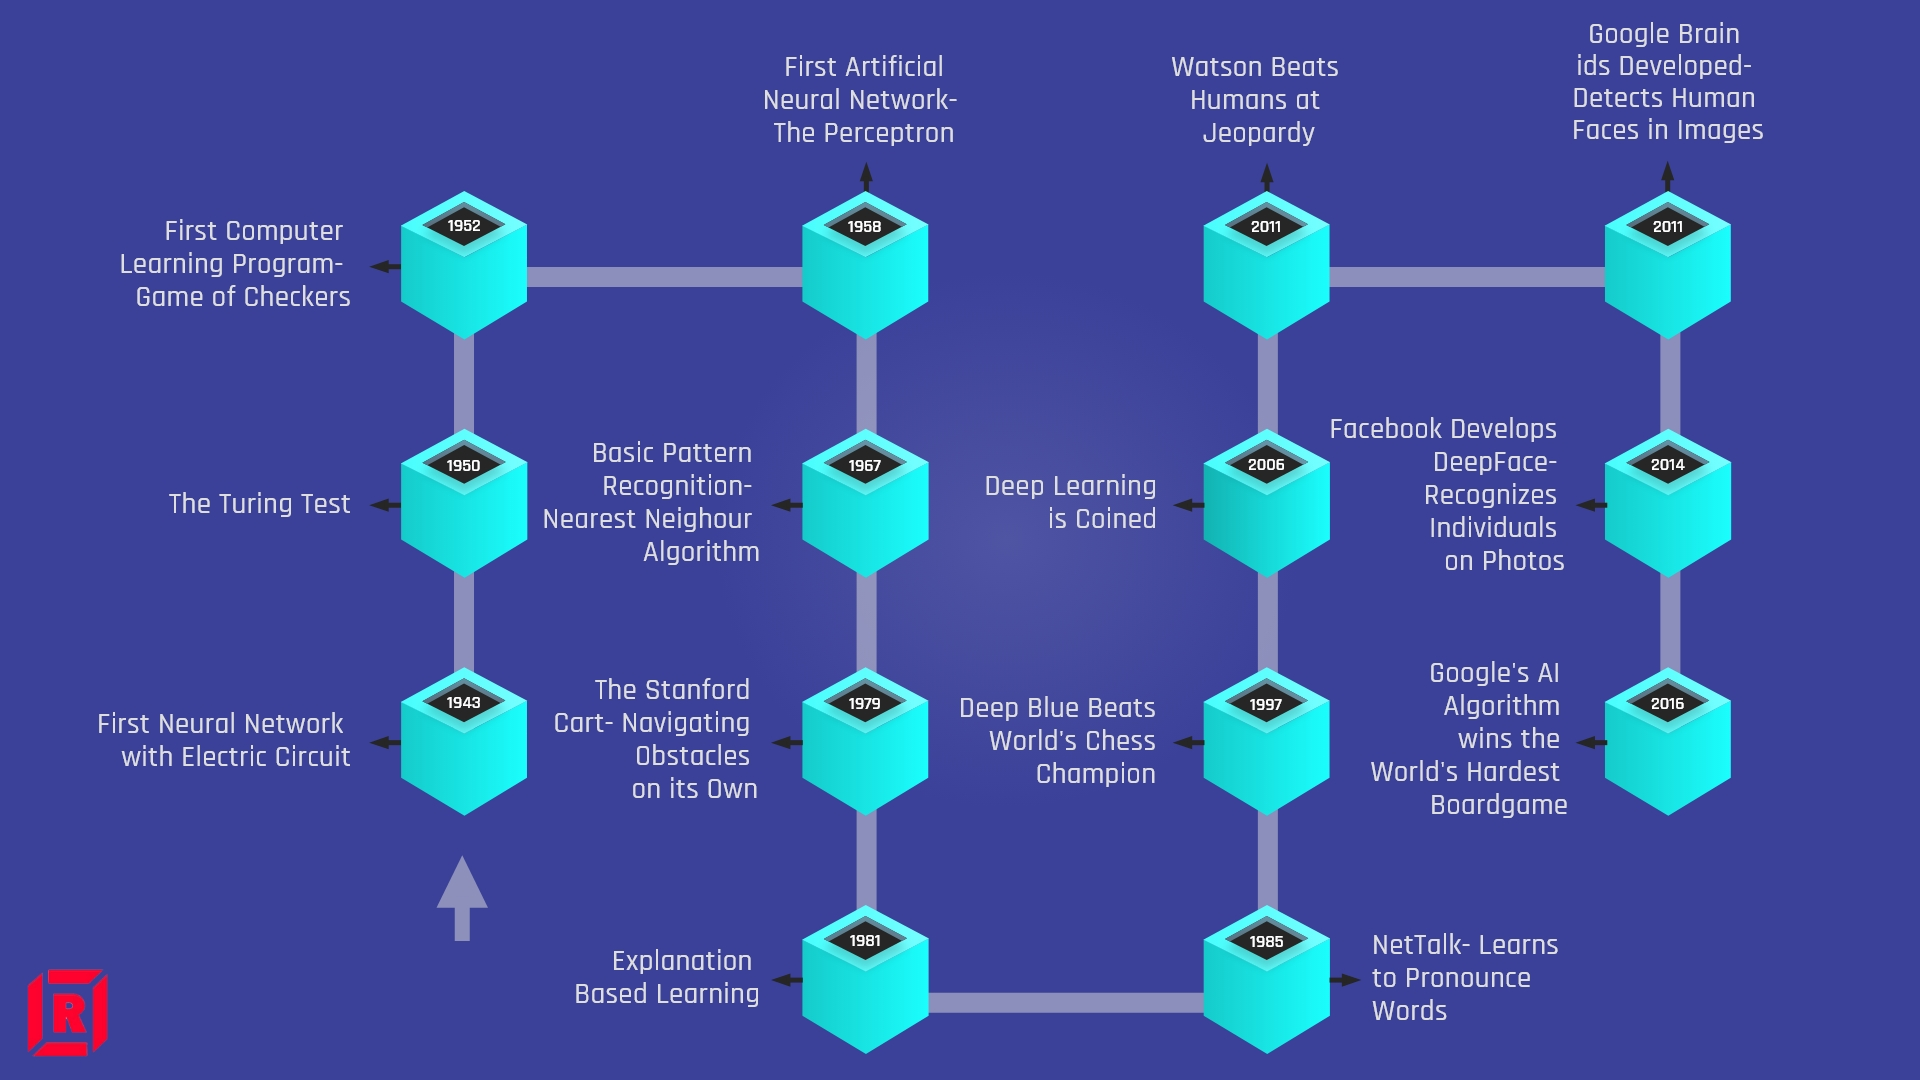 Timeline of Machine Learning